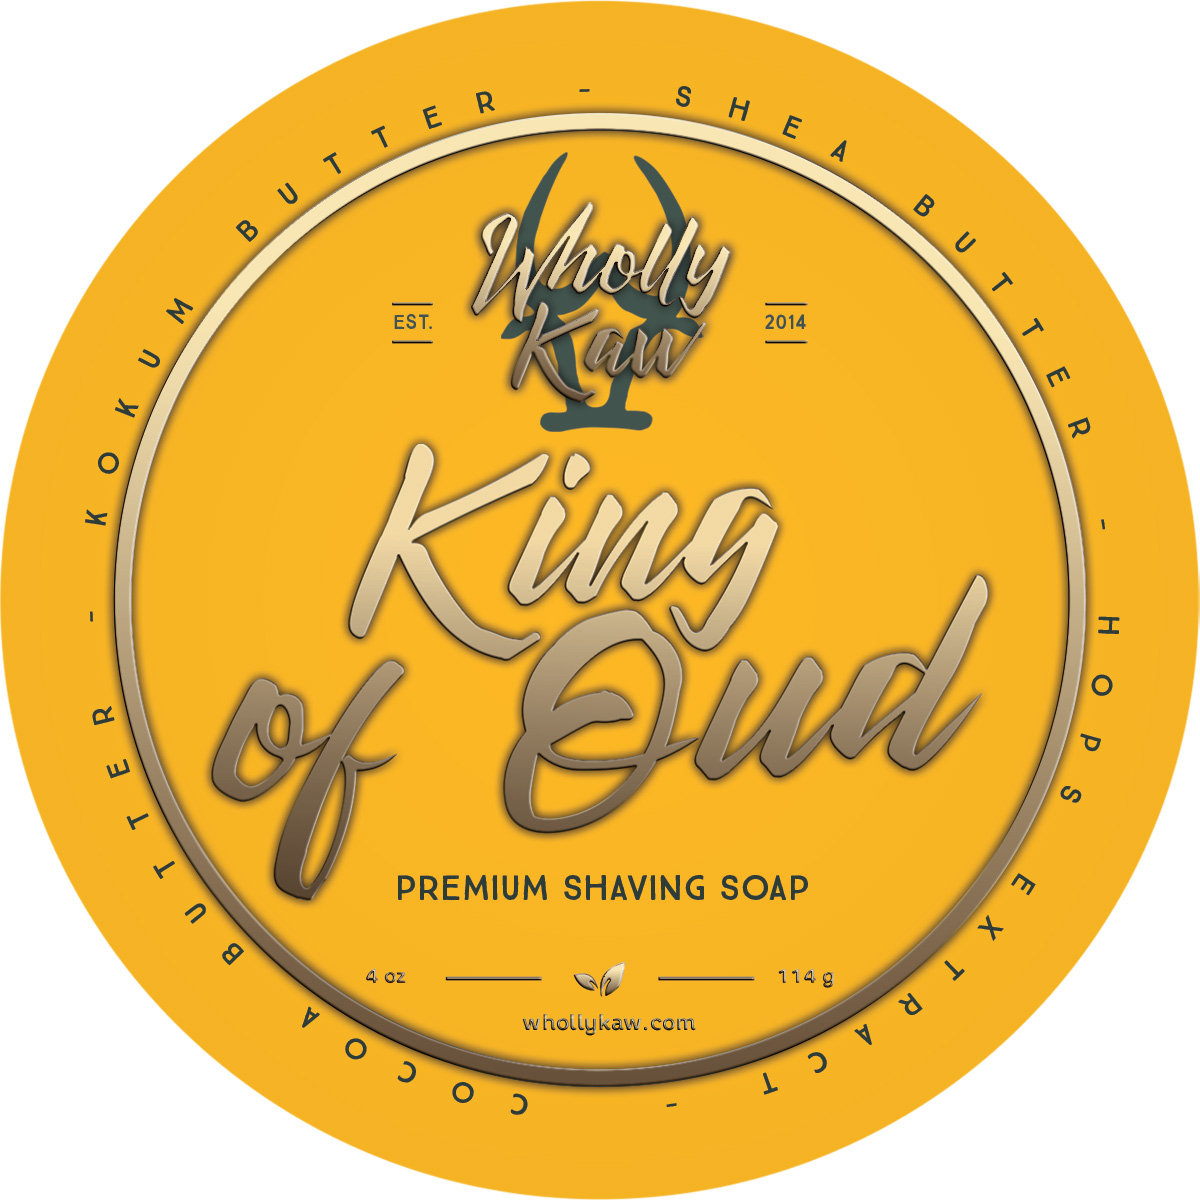 Wholly Kaw - King of Oud - Soap (Vegan) image